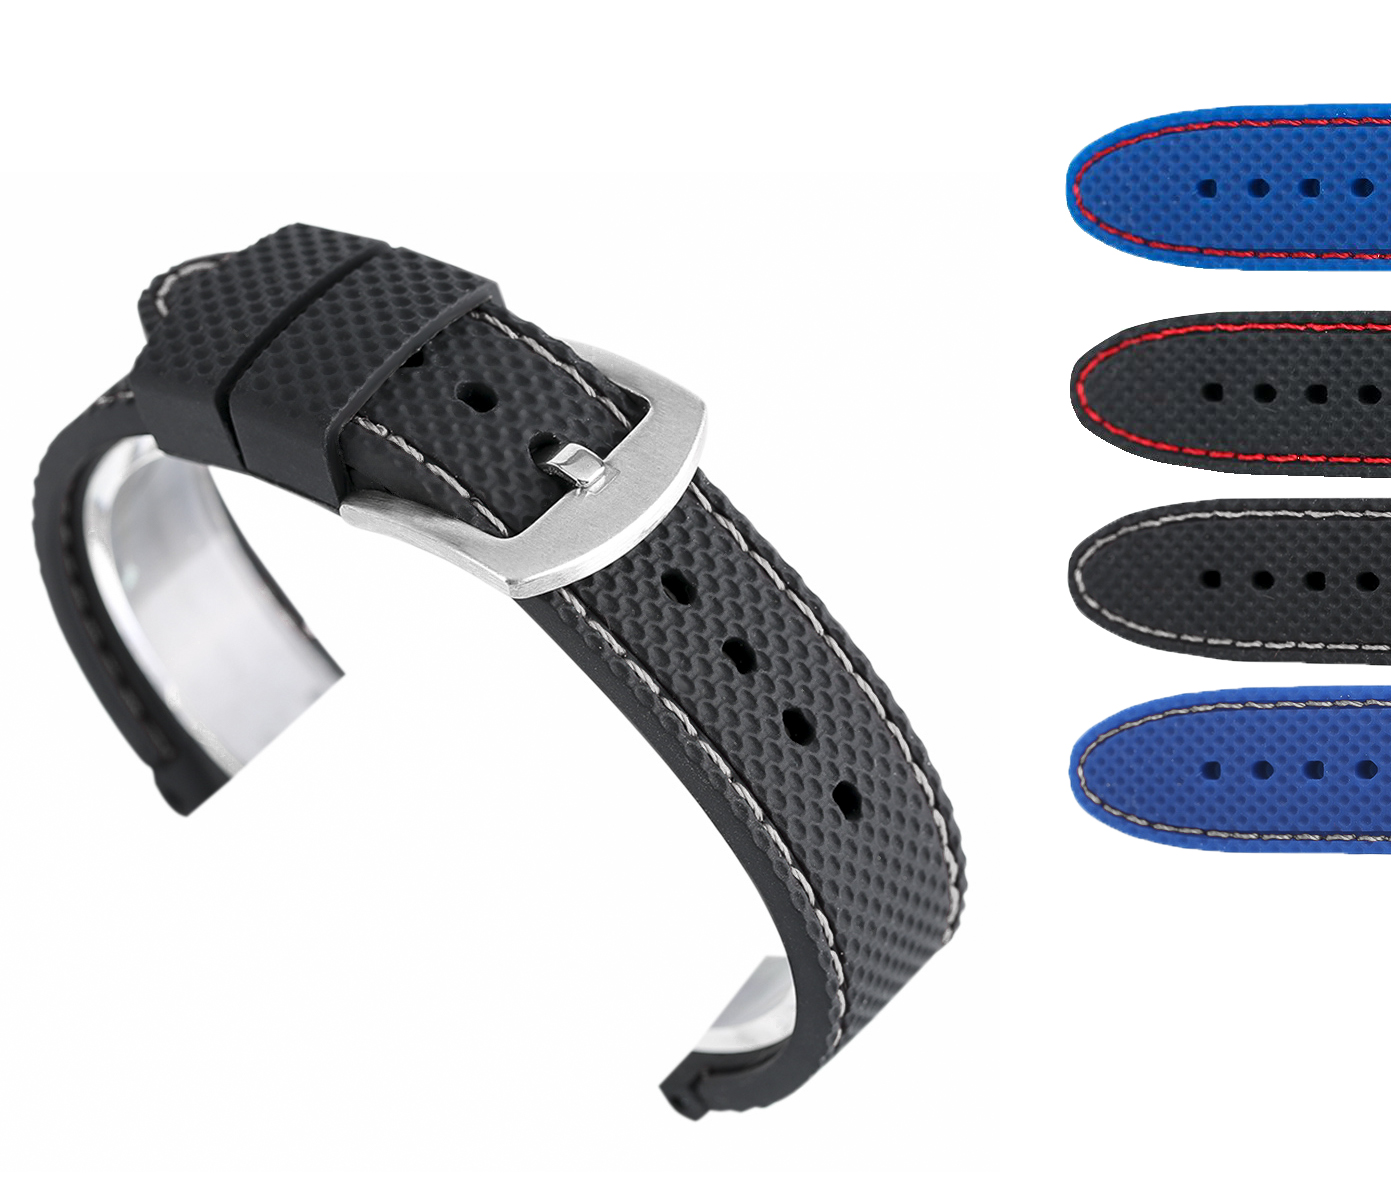 22/24MM Waterproof Soft Replacement Black/Blue Diving Bracelet Silicone Watch Strap Band Rubber Pin Buckle High Quality 18/20MM black blue gray red 18mm 20mm 22mm waterproof silicone watchband replacement sport ourdoor with pin buckle diving rubber strap